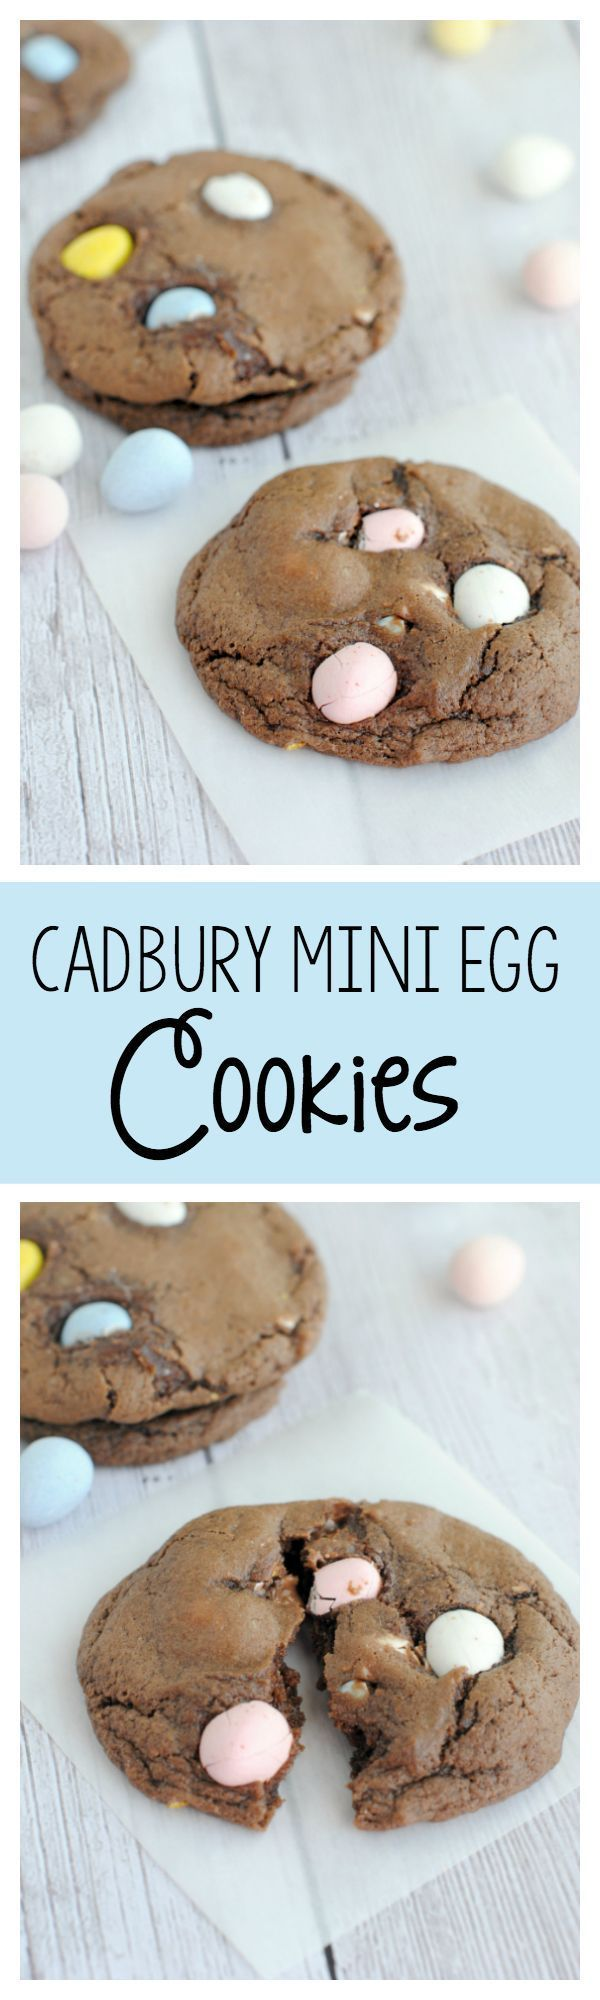 YUM! Cadbury Mini Egg Cookies!